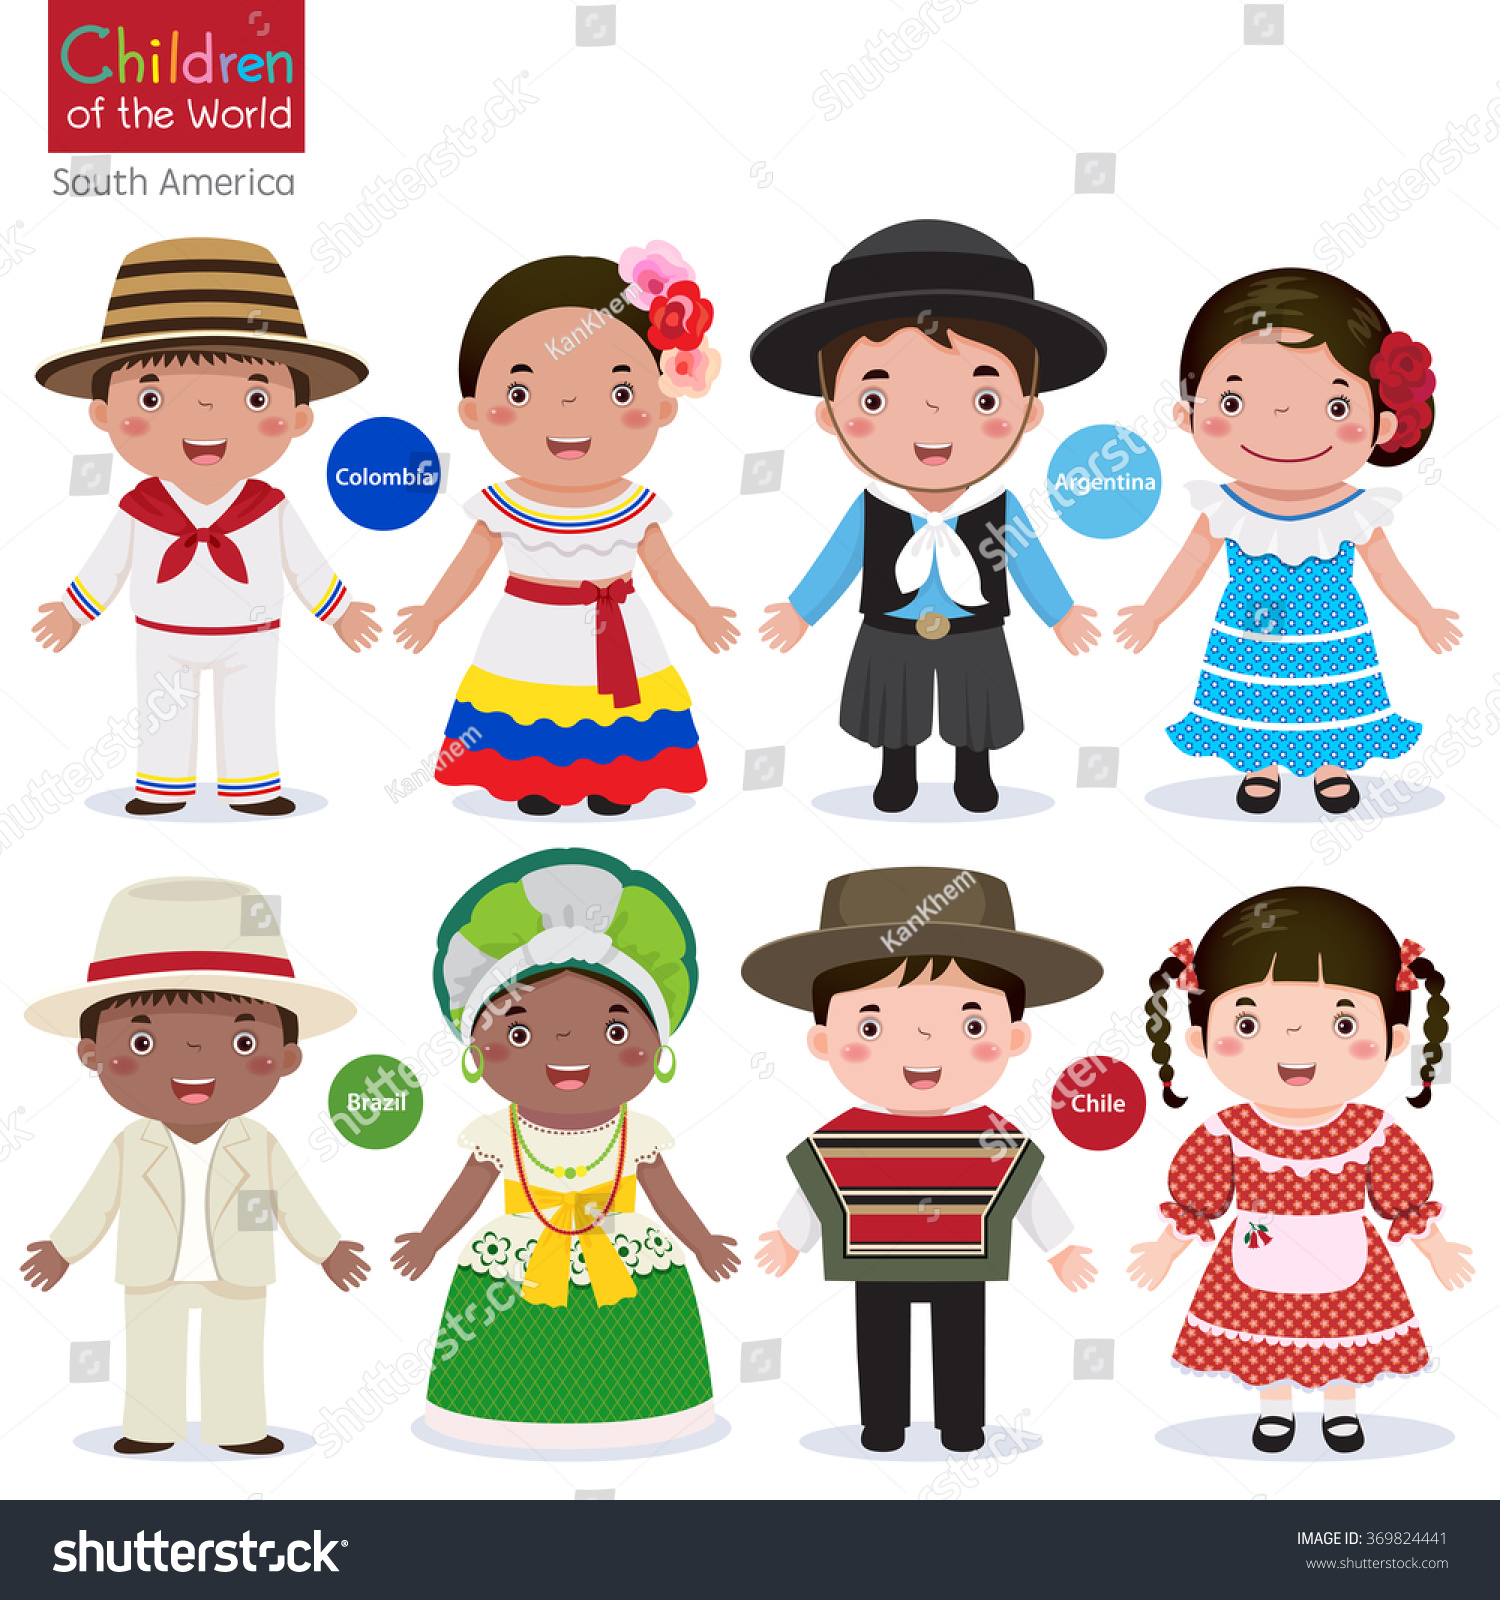 In different traditional costumes colombia argentina brazil chile